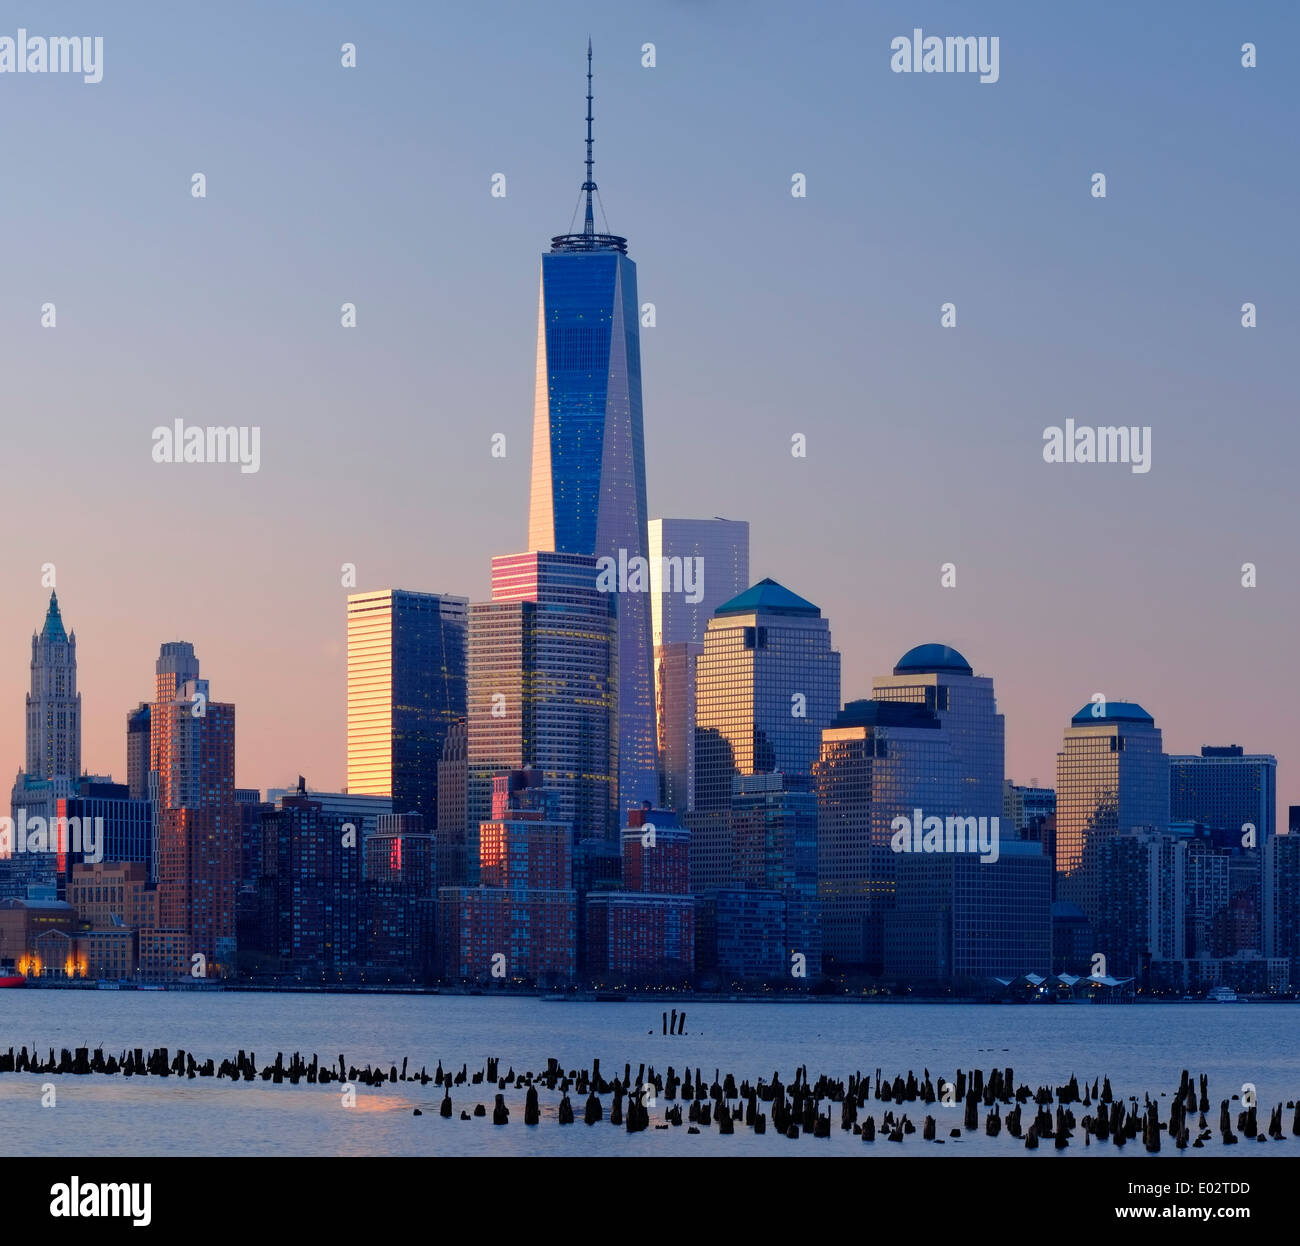 New York Skyline Vue sur le fleuve Hudson, New York, USA Photo Stock